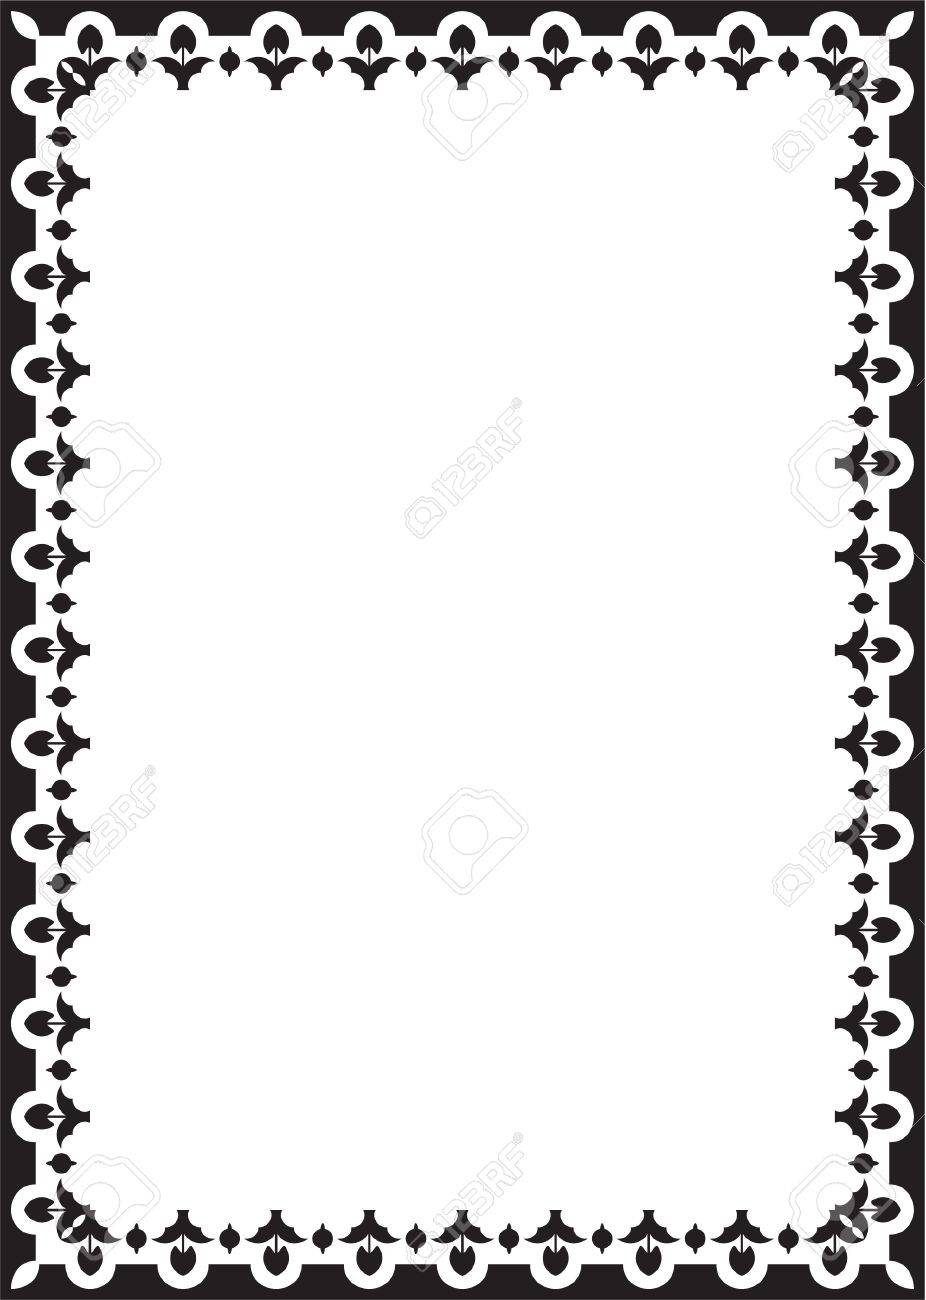 Baroque Book Frame Isolated On White Royalty Free Cliparts, Vectors ...